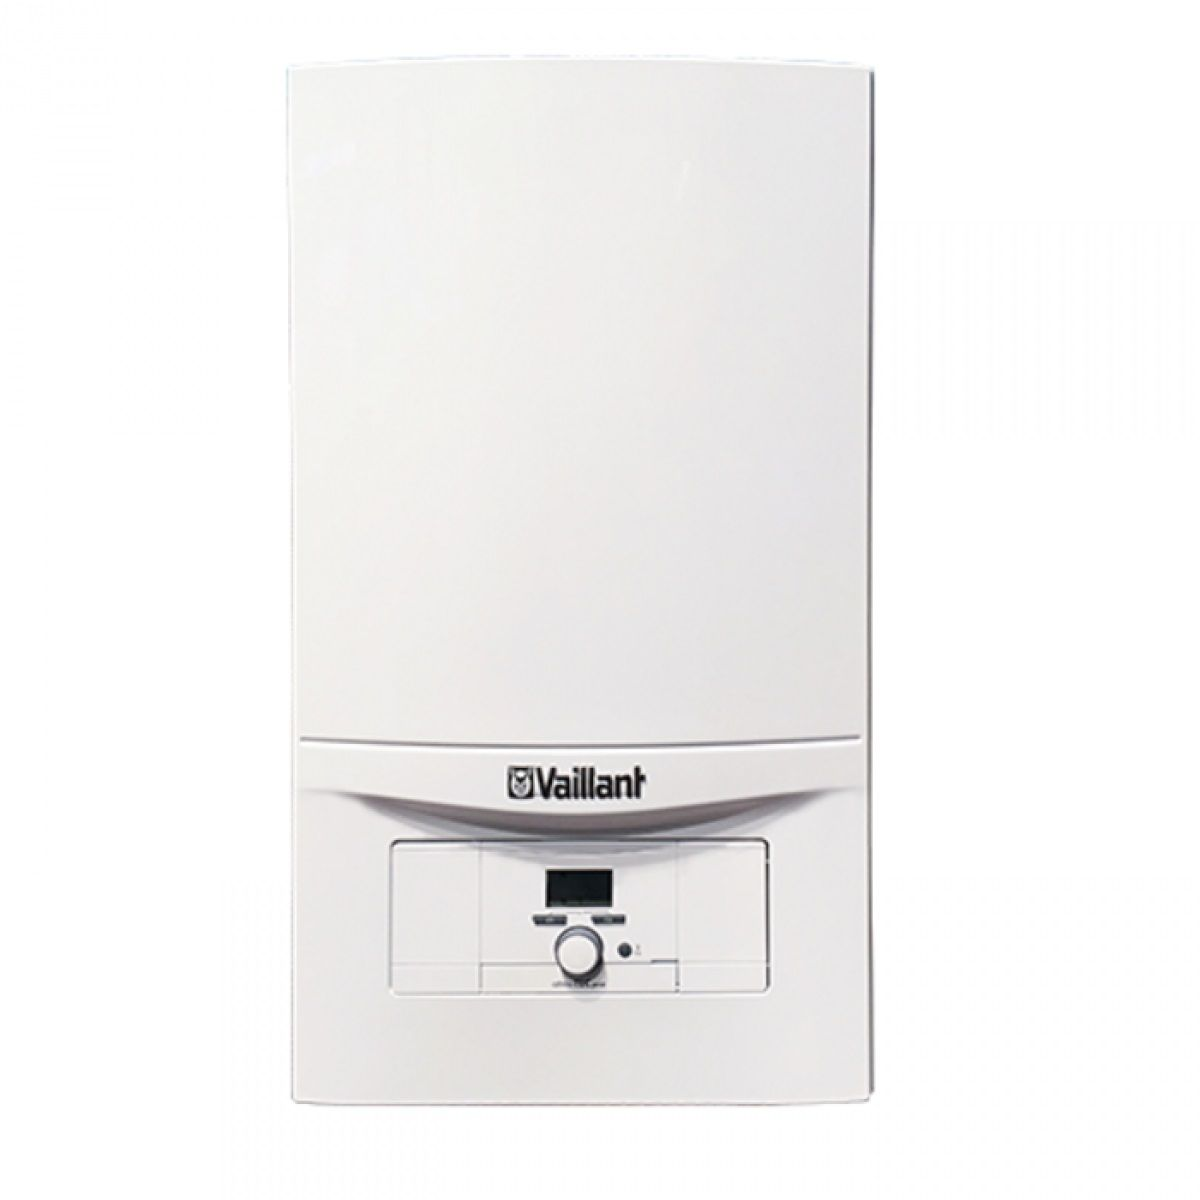 Газовый котел VAILLANT VUW 240/5-5 atmoTEC plus